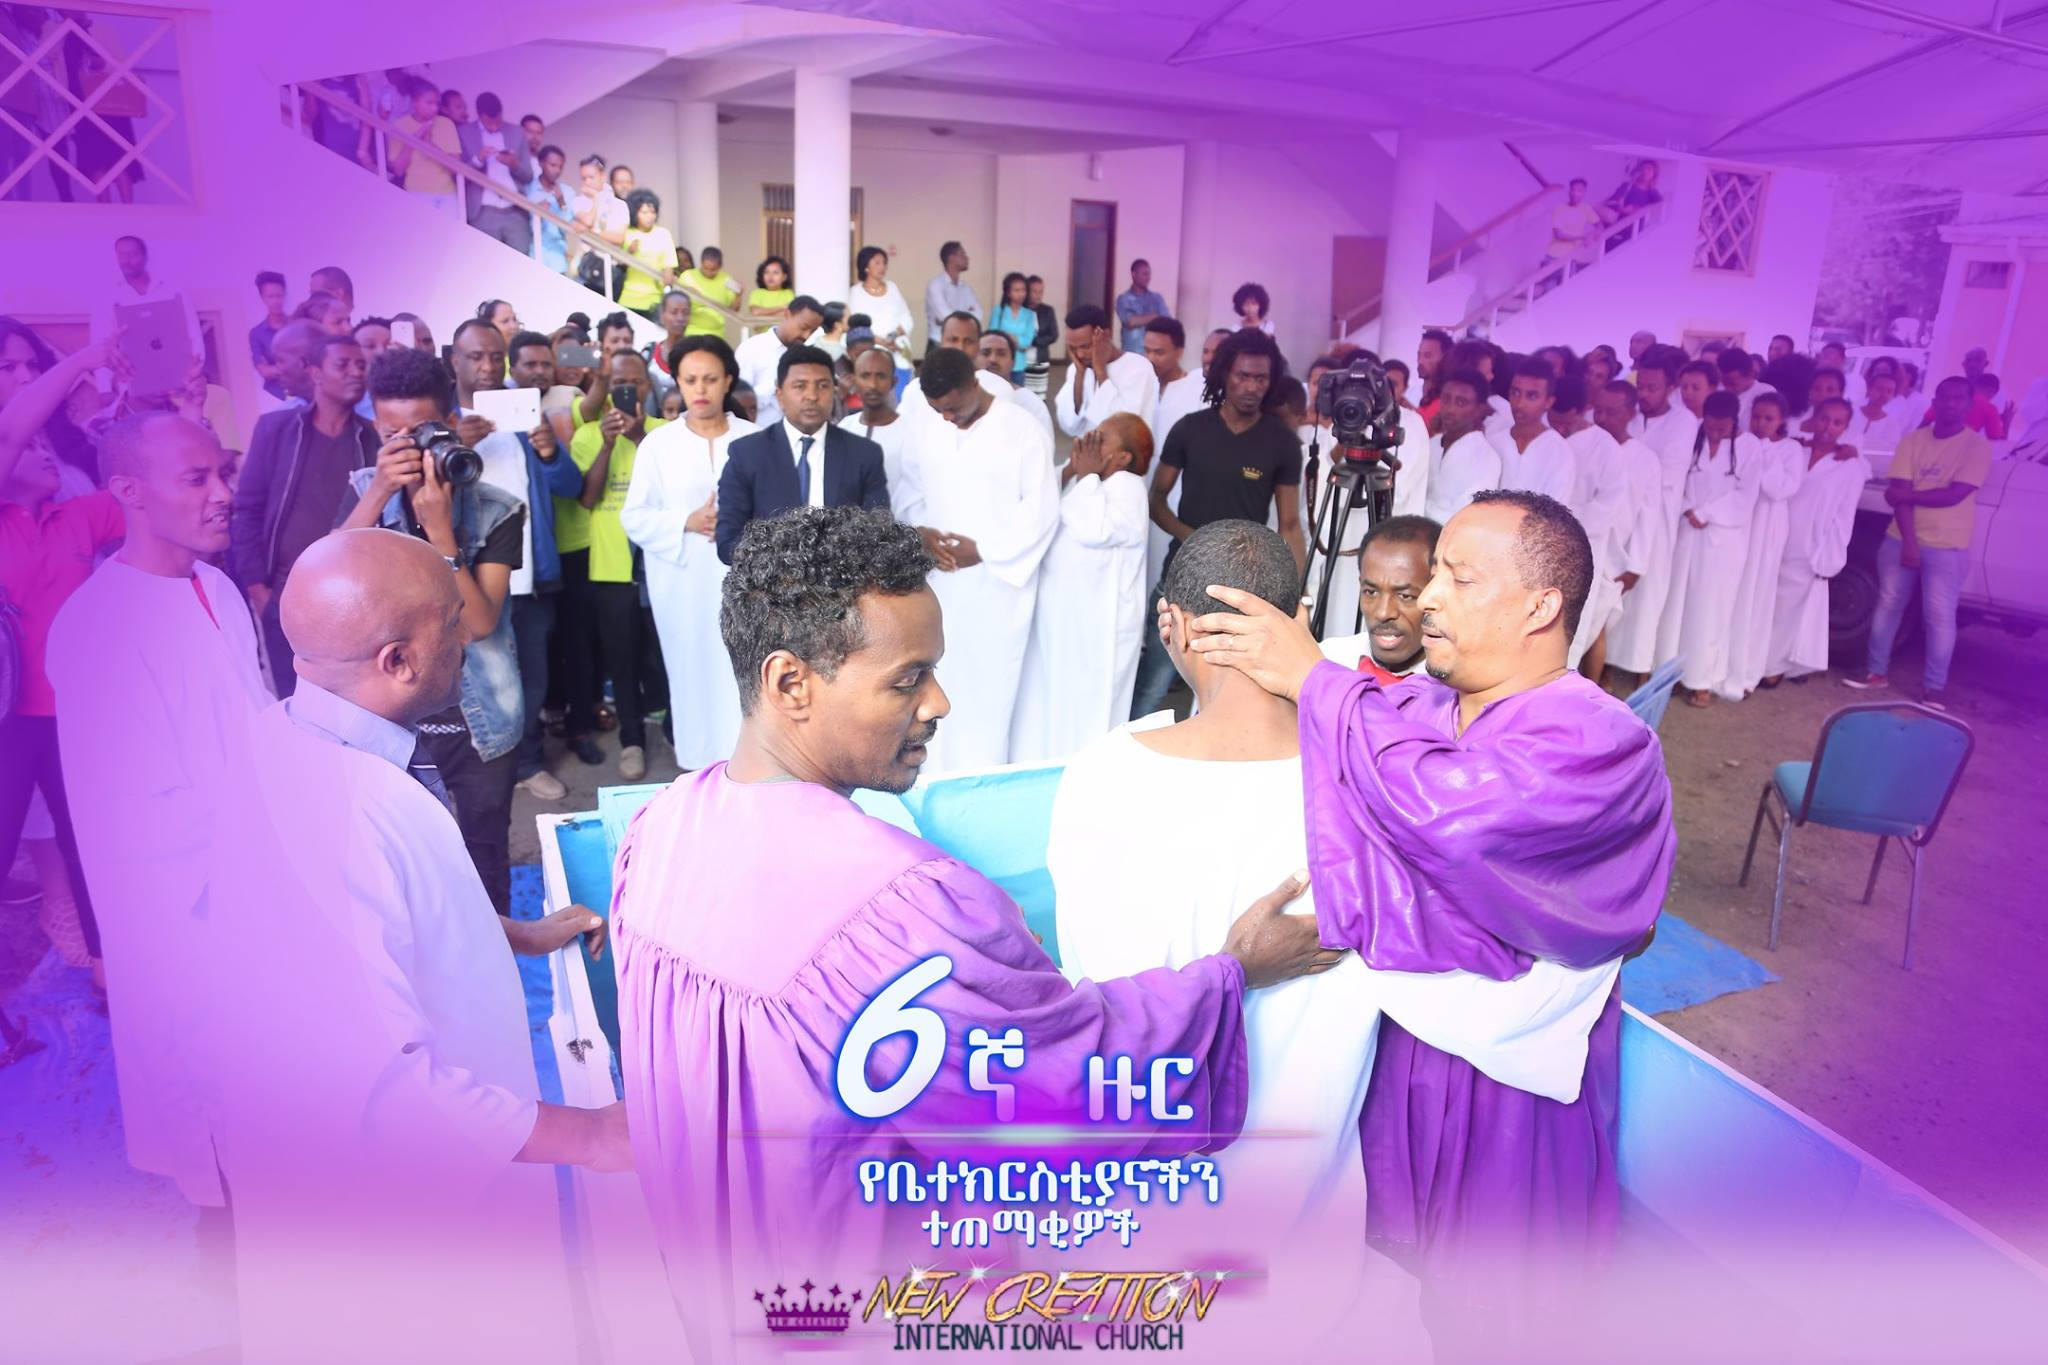 New Creation church ethiopia 6th Round Baptism (5)